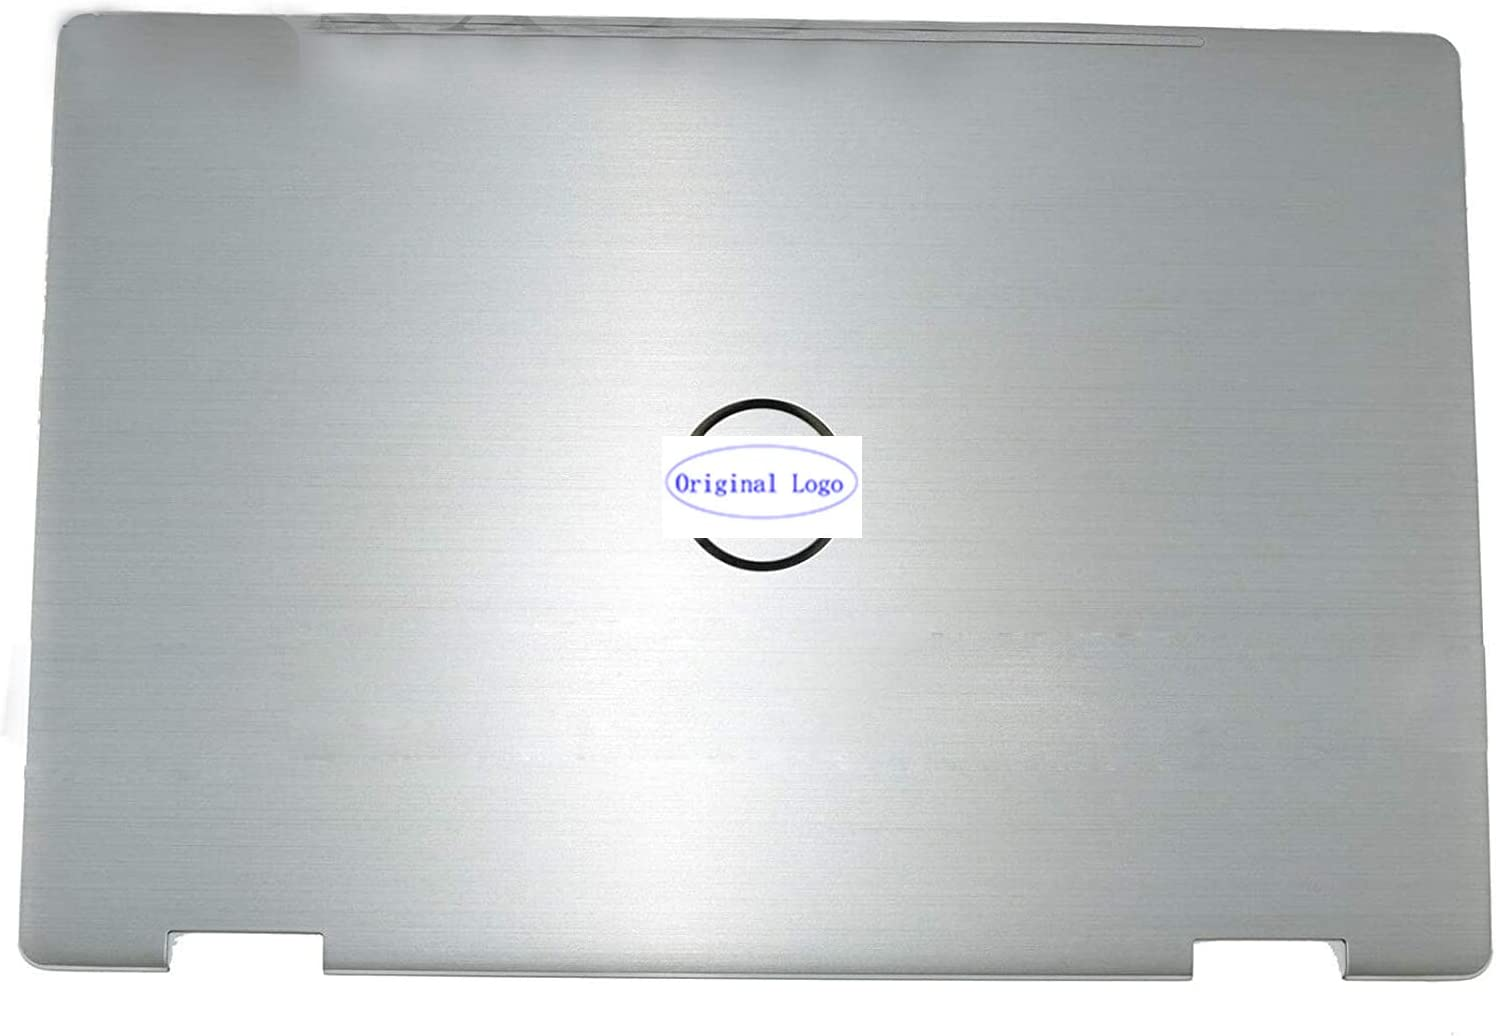 New Replacement for Dell Inspiron 15MF 7000 7569 7579 Laptop LCD Cover Back Rear Top Lid 0GCPWV GCPWV Natural Silver